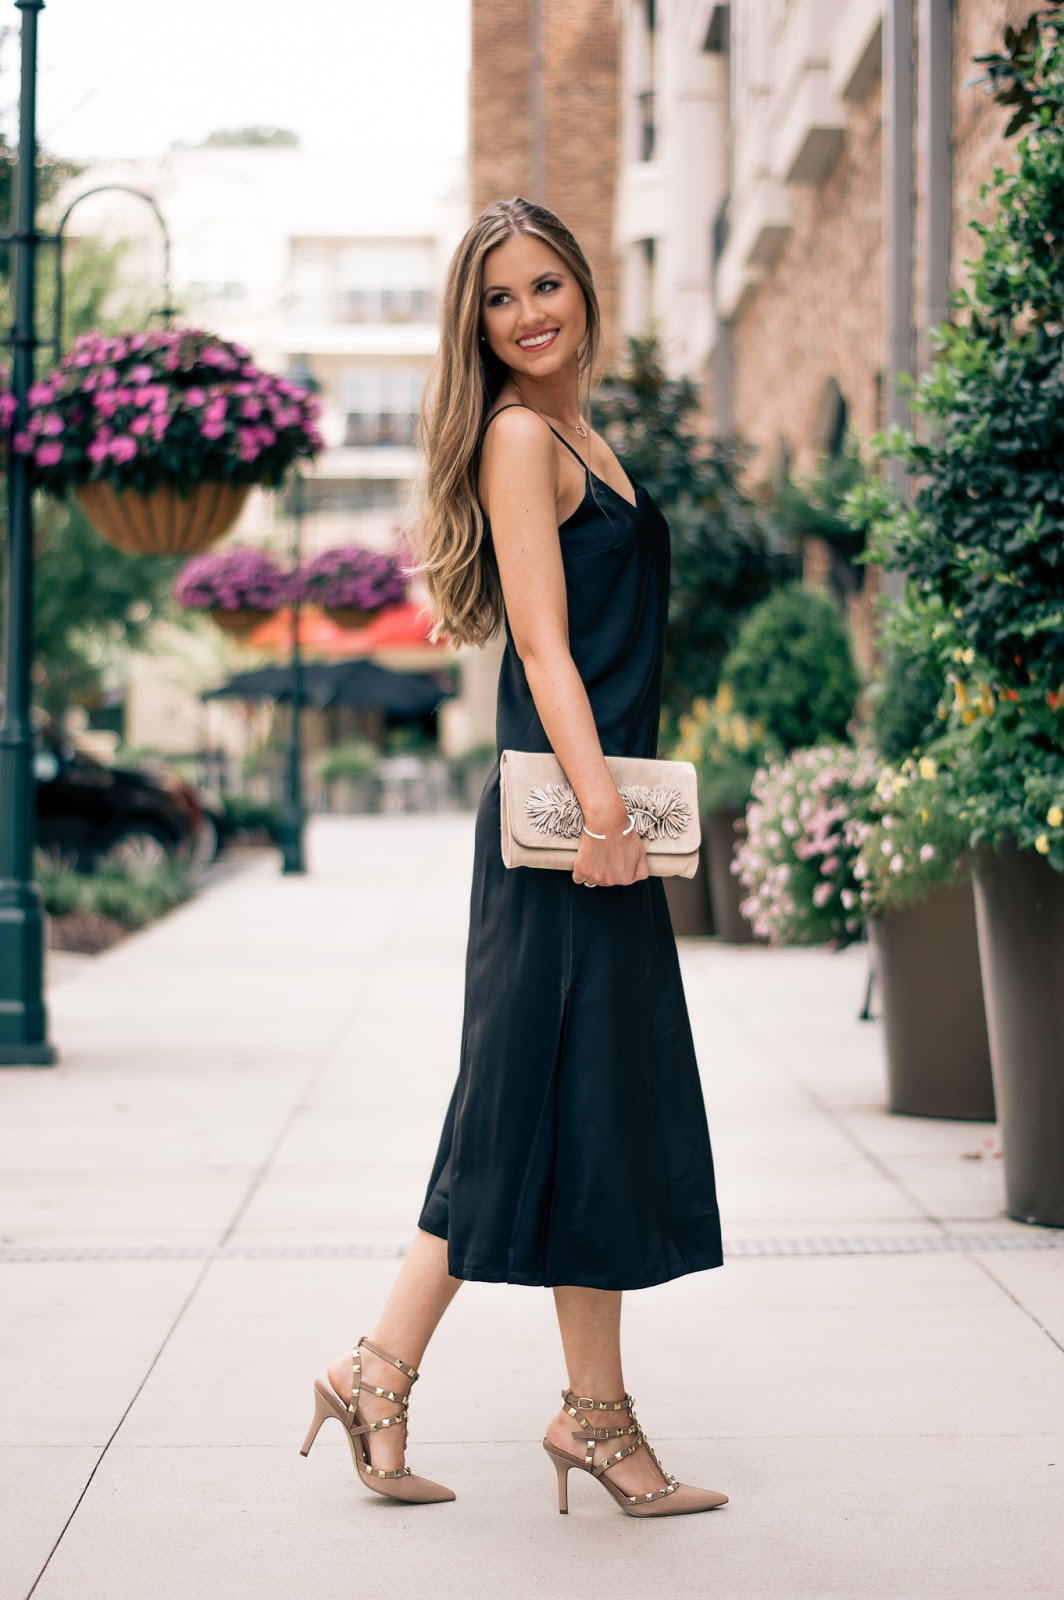 A-simple-and-chic-date-night-look